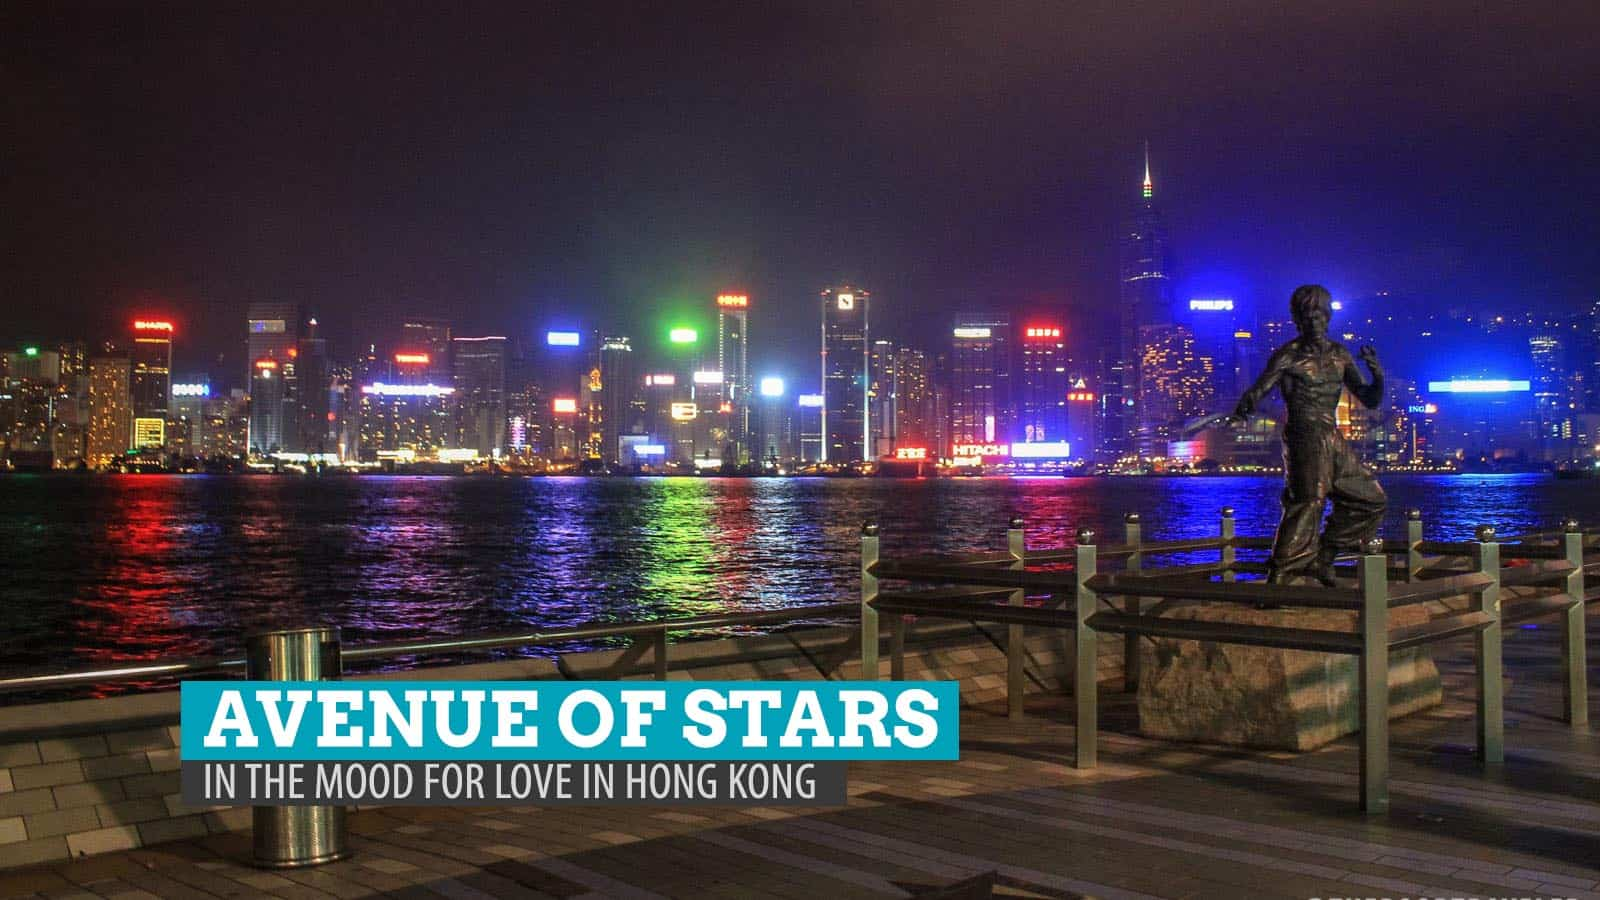 Hong Kong Star Avenue